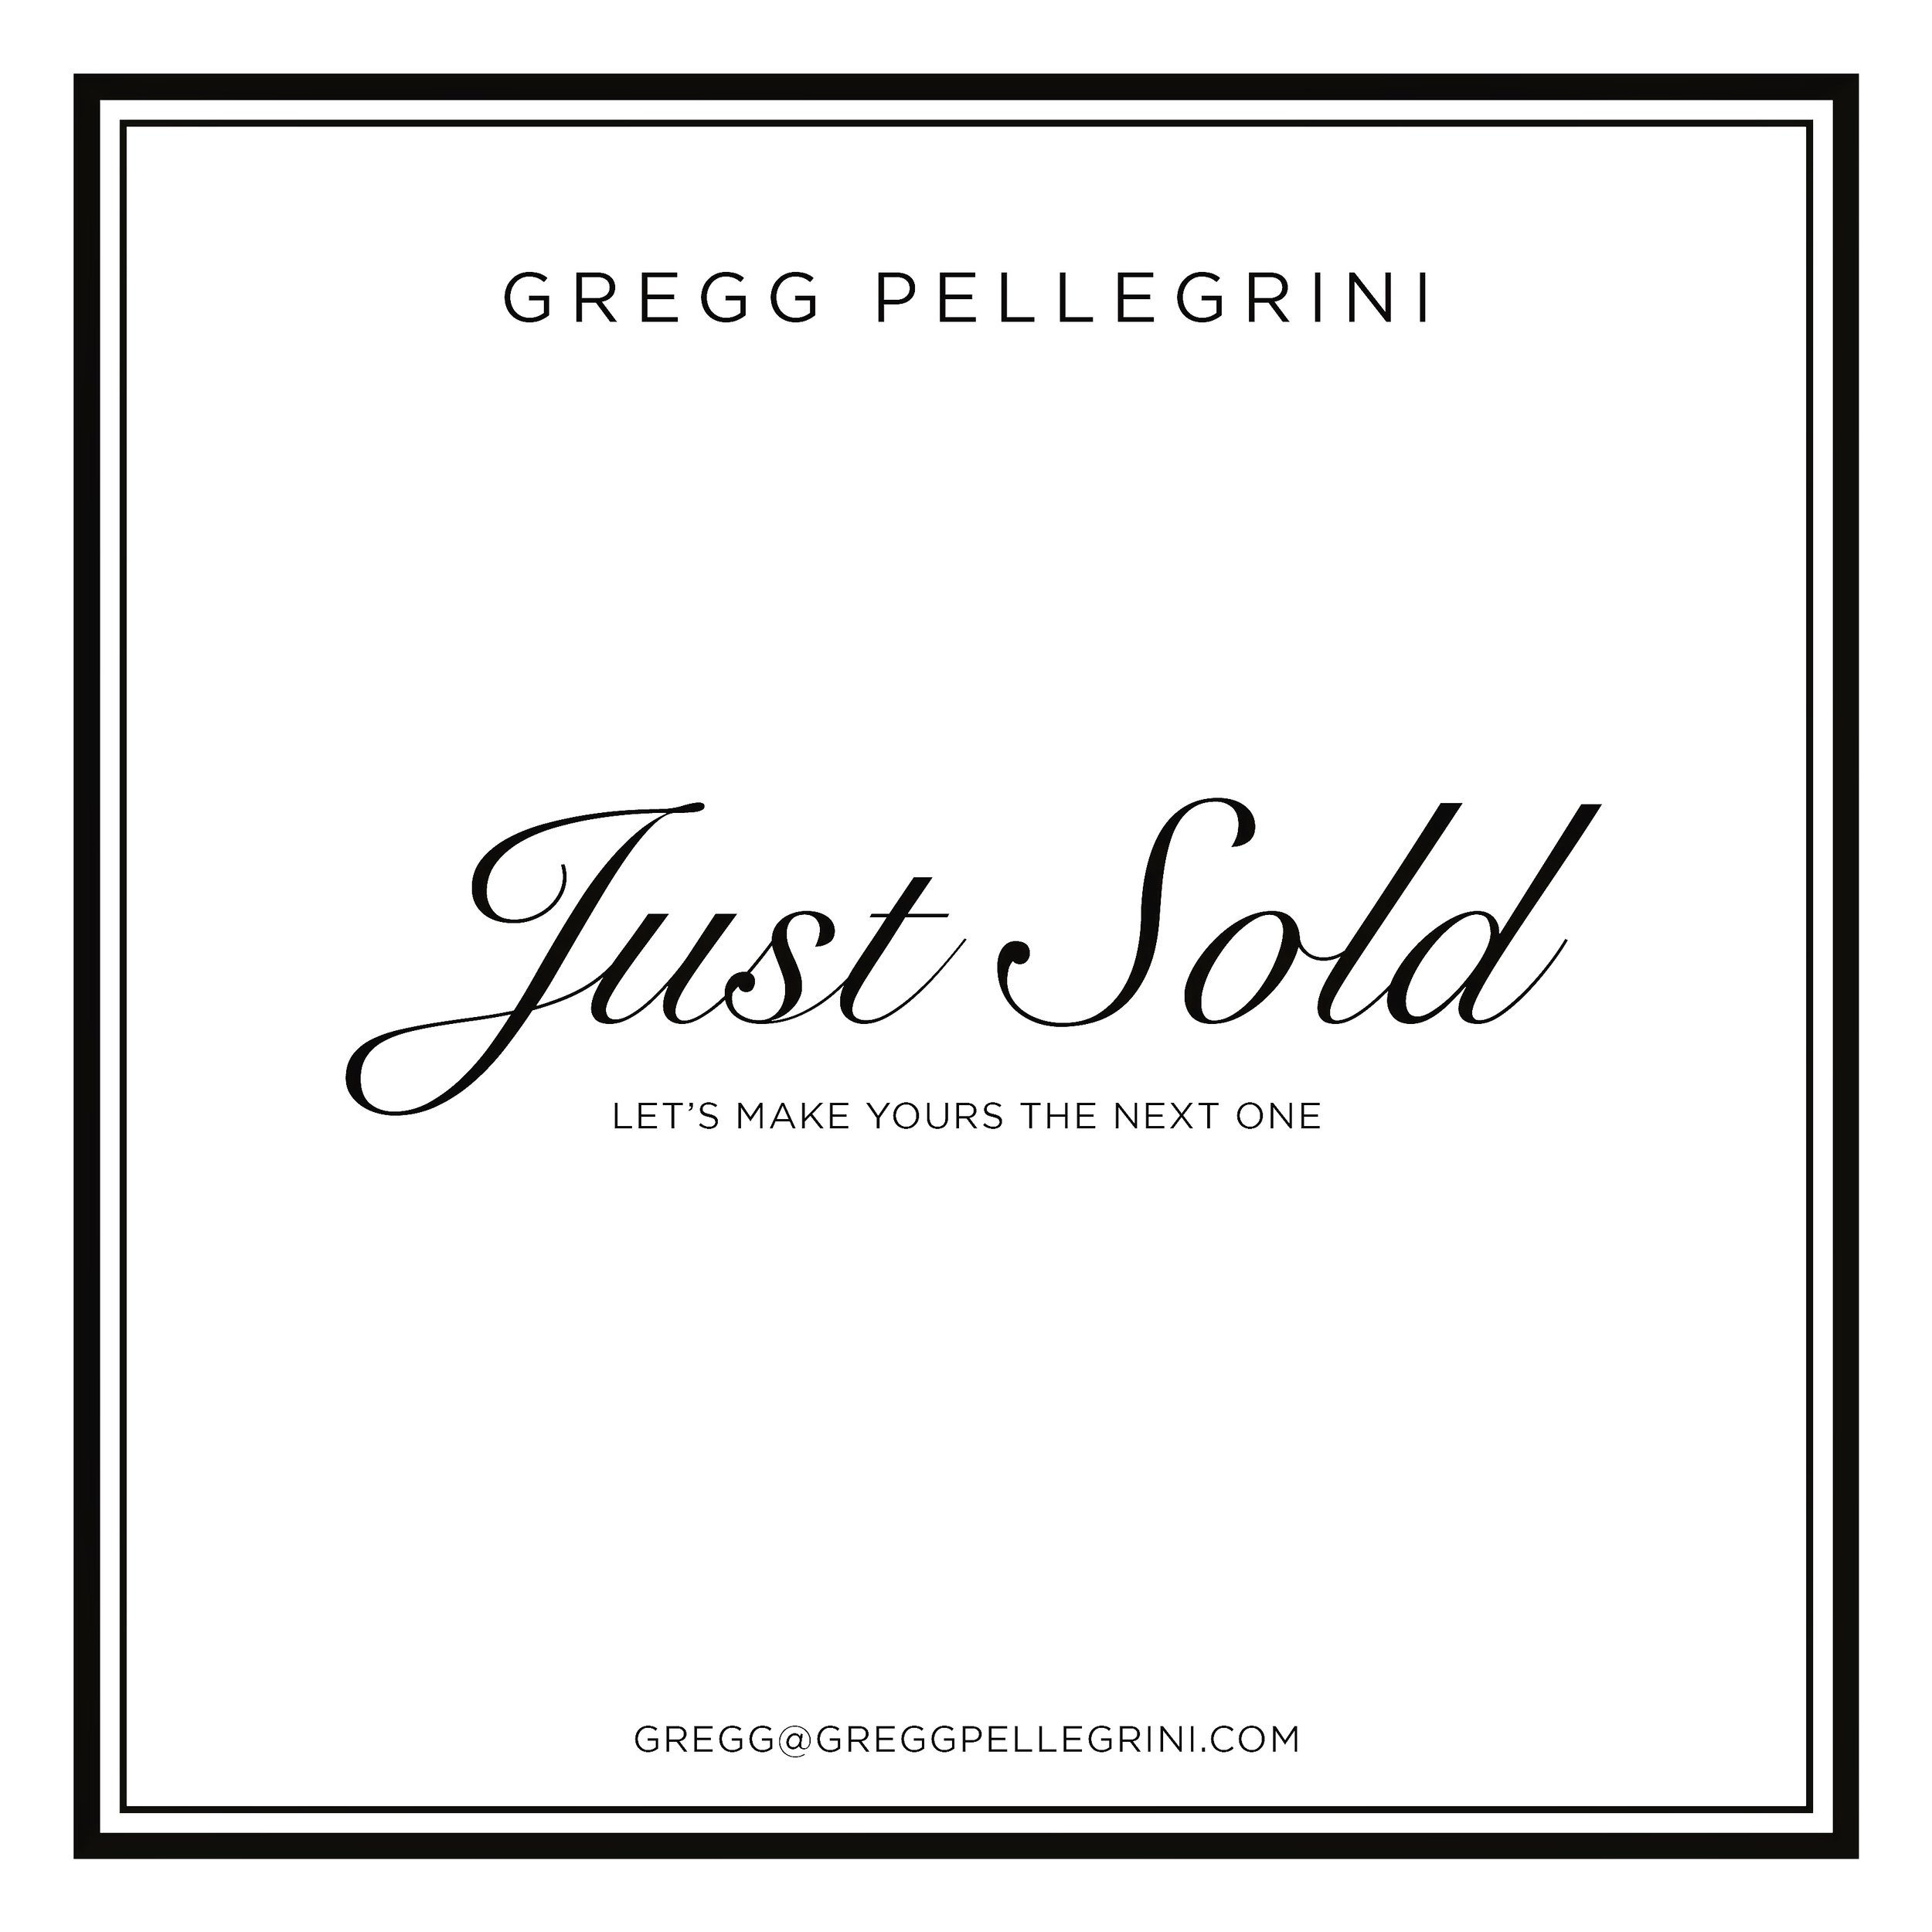 Just Sold Gregg Pellegrini